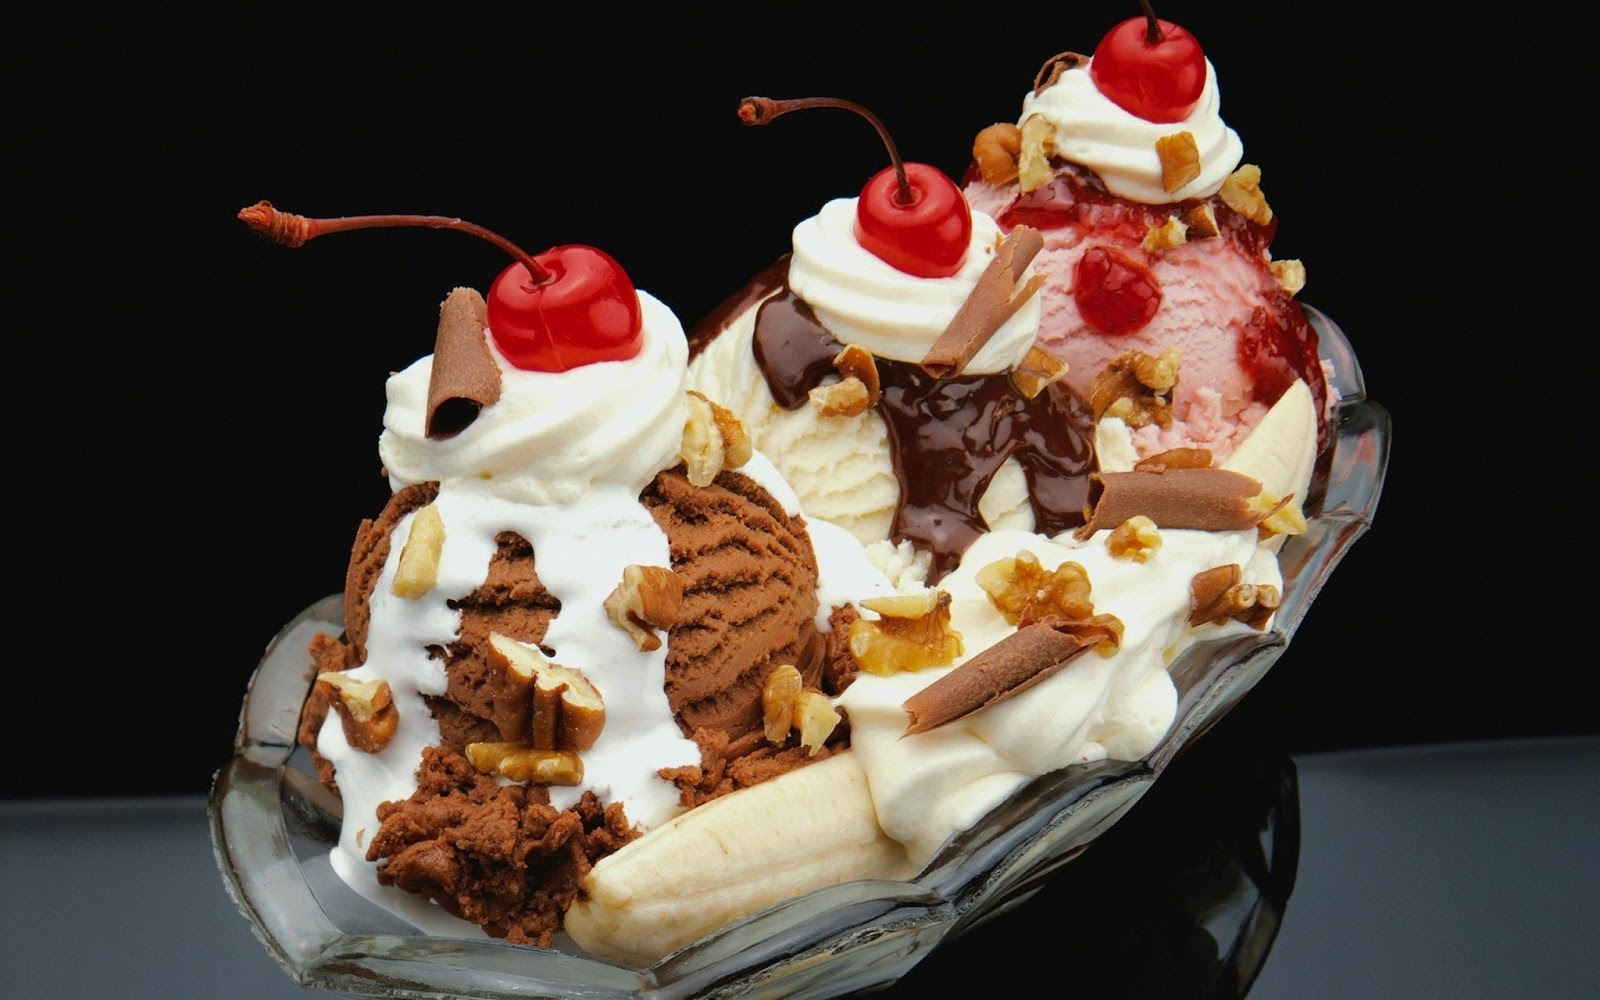 How to make the banana split banana boat health care for American cuisine desserts